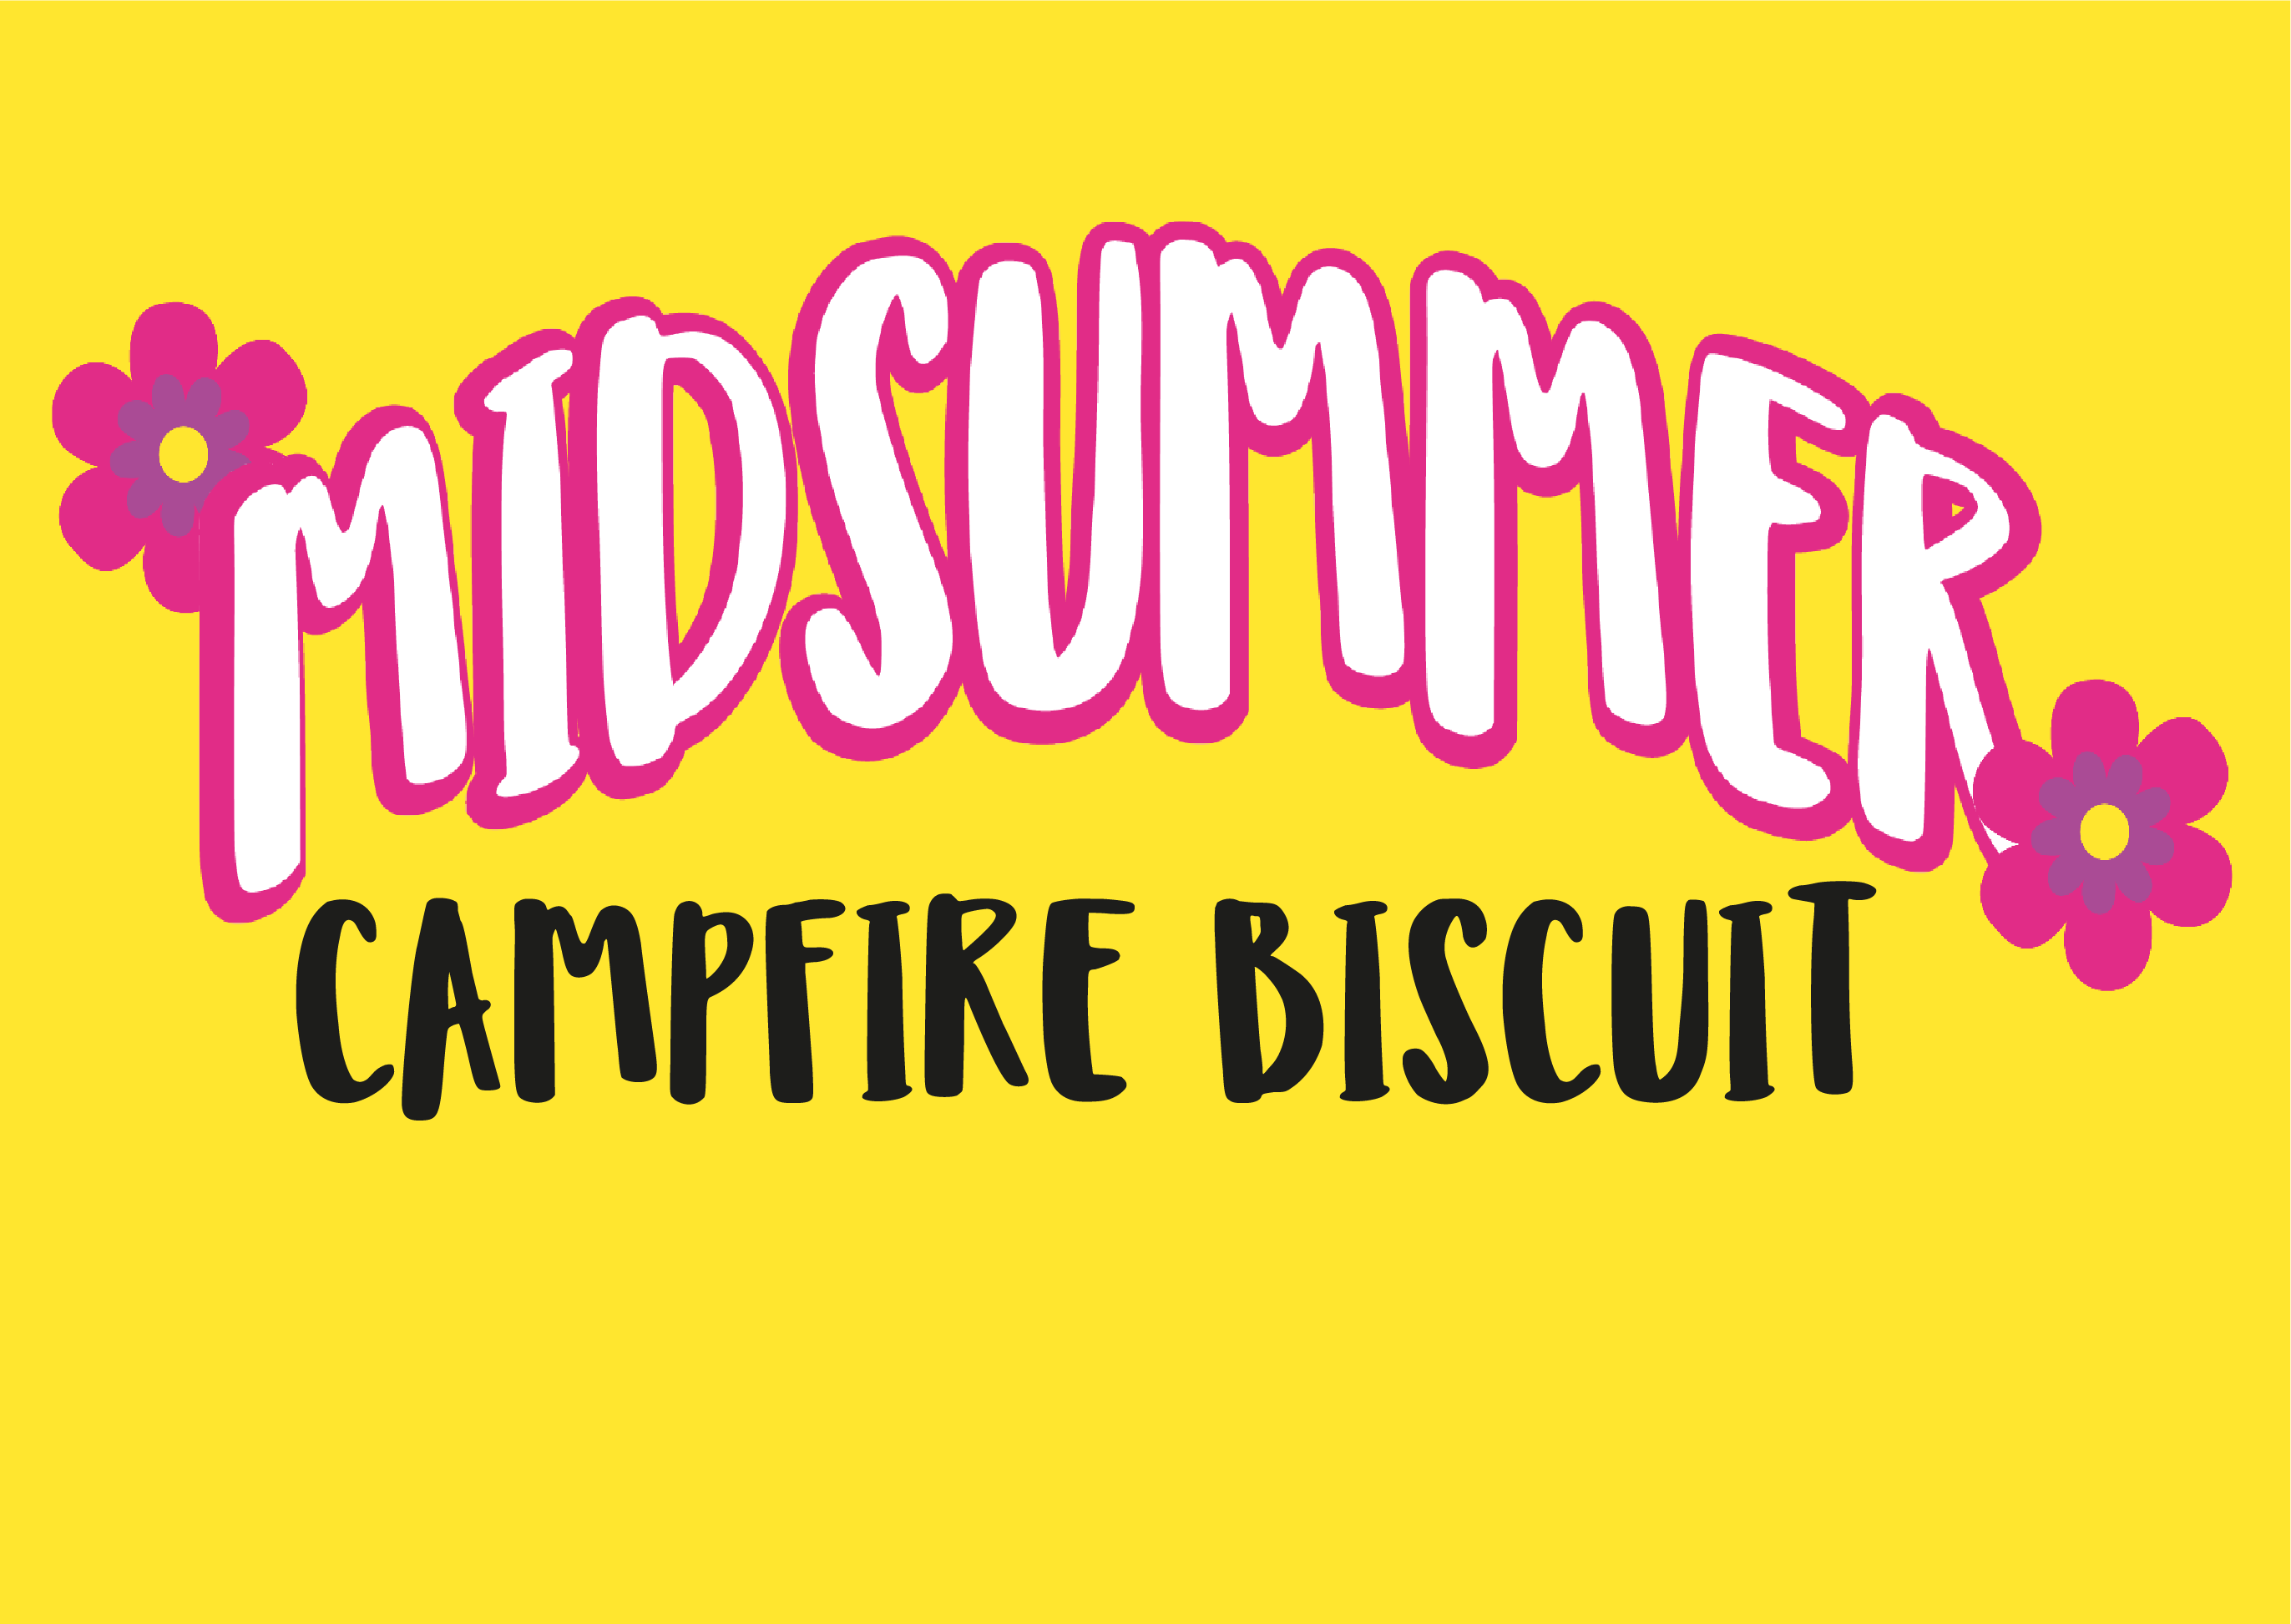 image relating to Campfire Biscuit